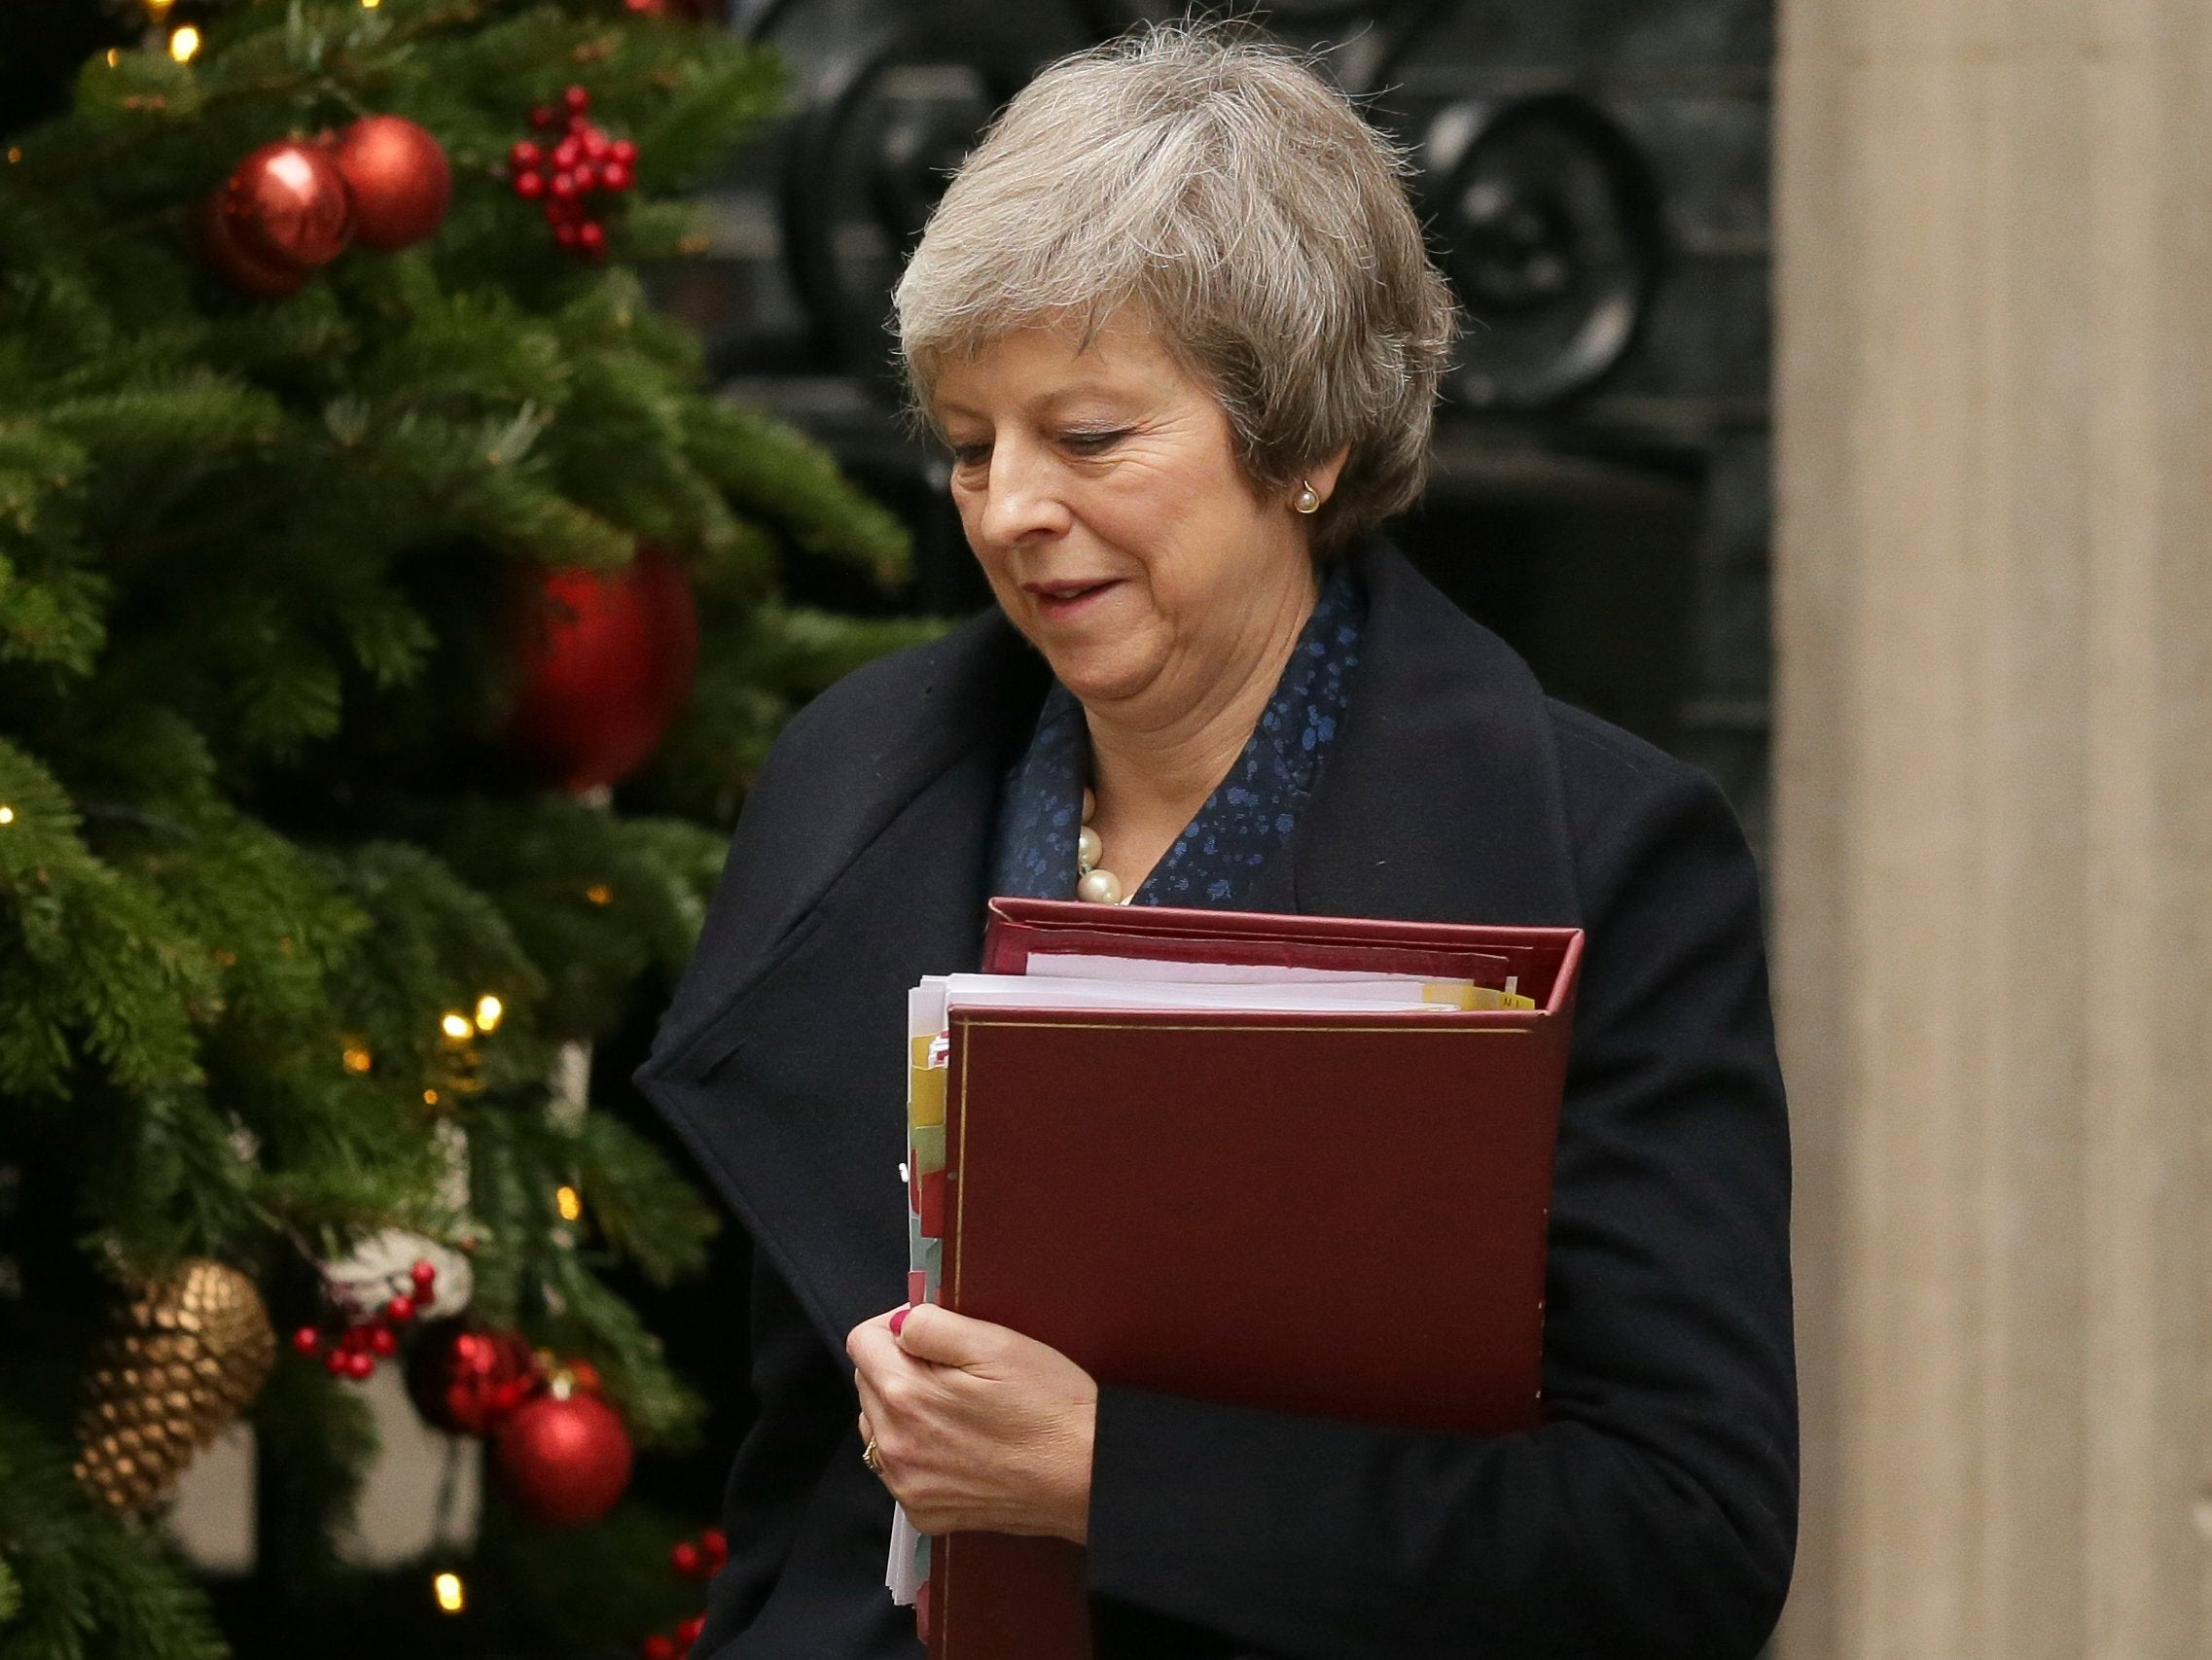 Theresa May no-confidence vote - LIVE: Tory bid to dethrone